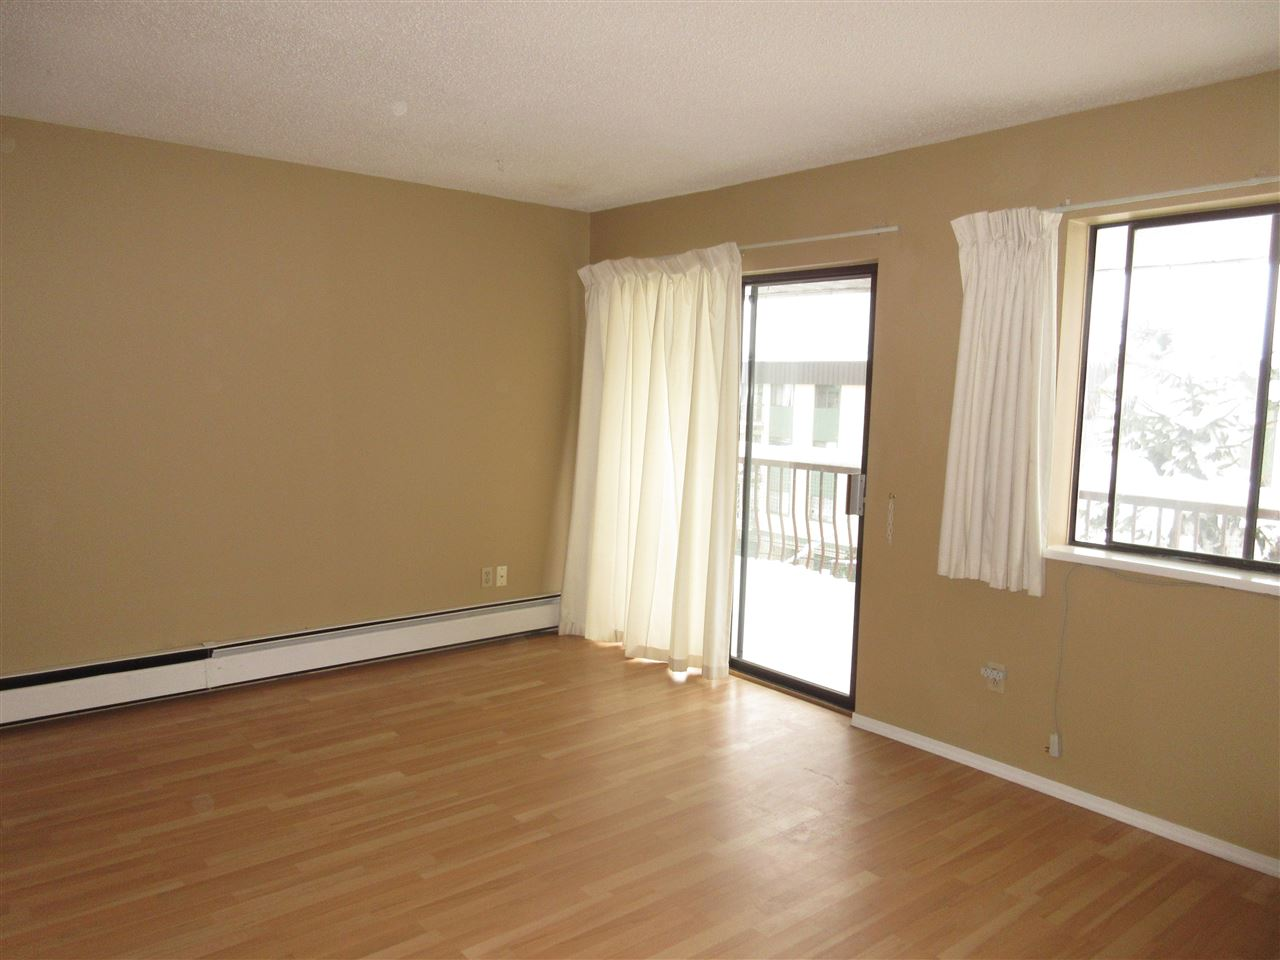 "Photo 3: 309 45749 SPADINA Avenue in Chilliwack: Chilliwack W Young-Well Condo for sale in ""CHILLIWACK GARDENS"" : MLS® # R2137266"